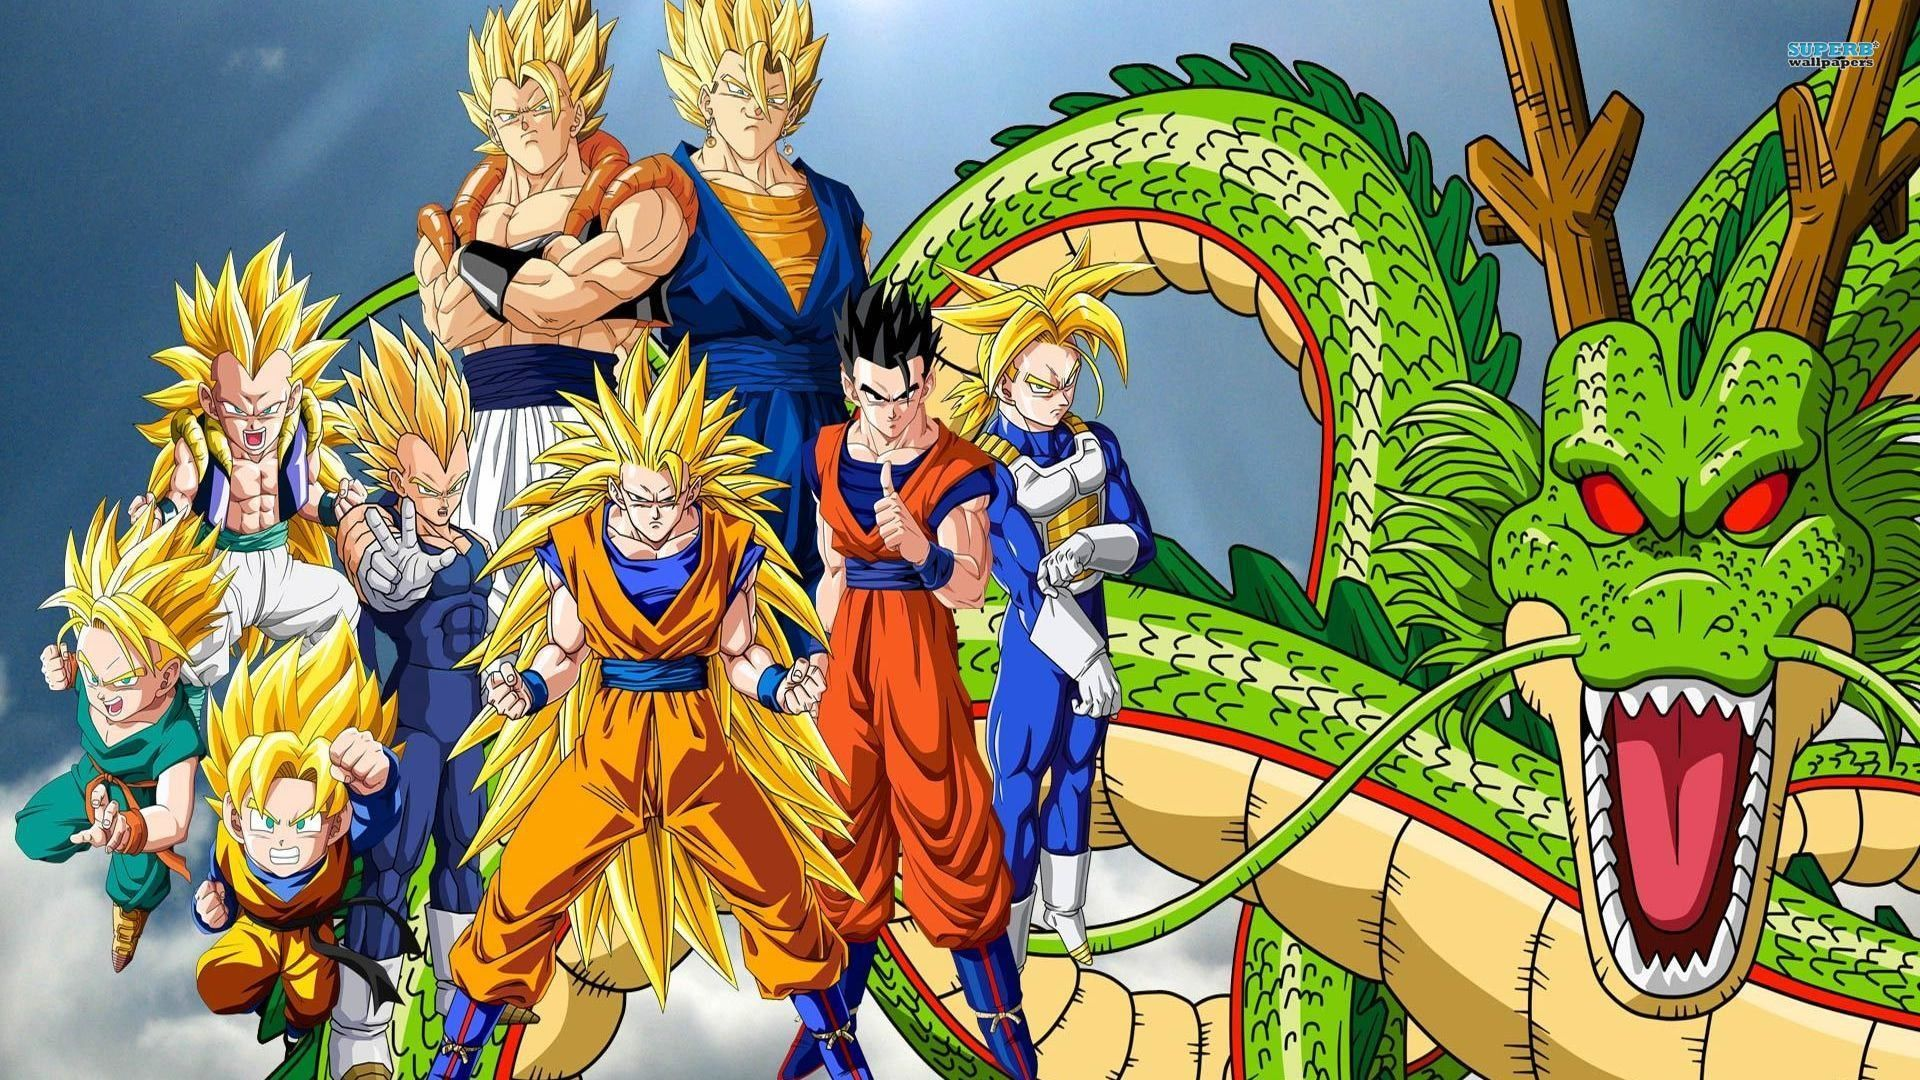 1920x1080 Dragon Ball Z Wallpaper Hd 1920x1080 Dragon Ball Z